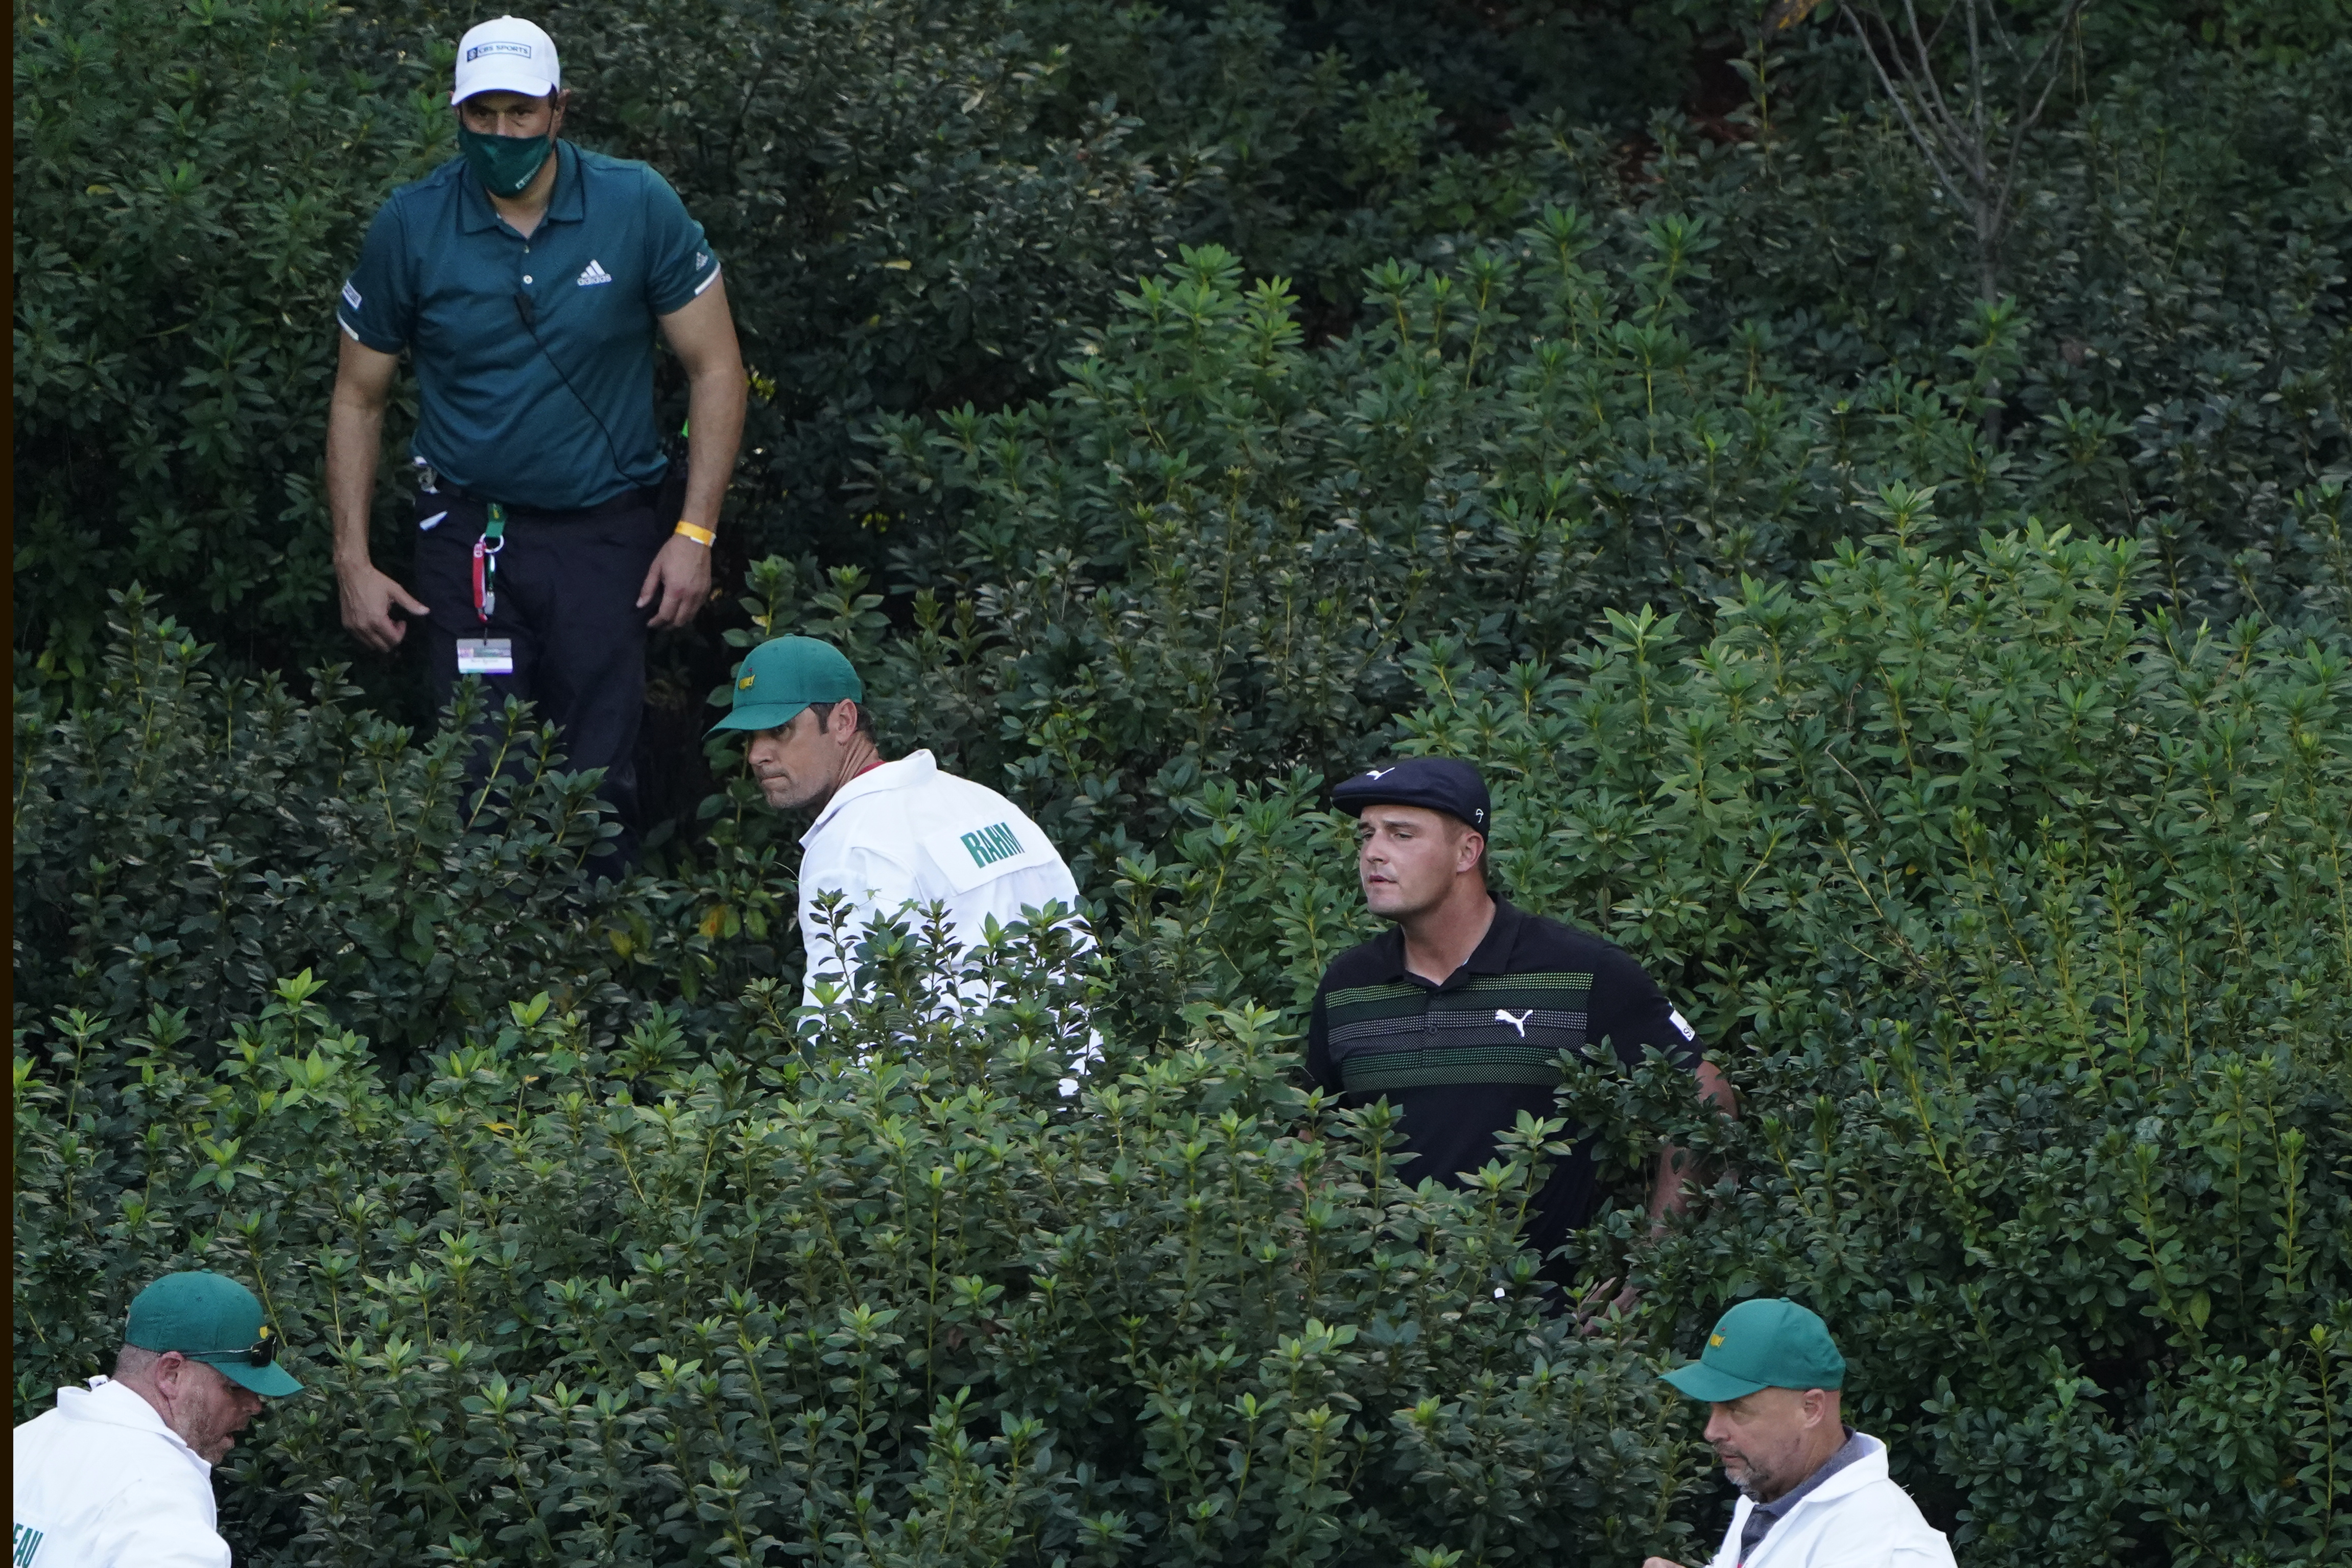 Bryson DeChambeau, caddies and officials look for his ball in the bushes on the 13th hole during the first round of the Masters golf tournament Thursday, Nov. 12, 2020, in Augusta, Ga. (AP Photo/Chris Carlson)